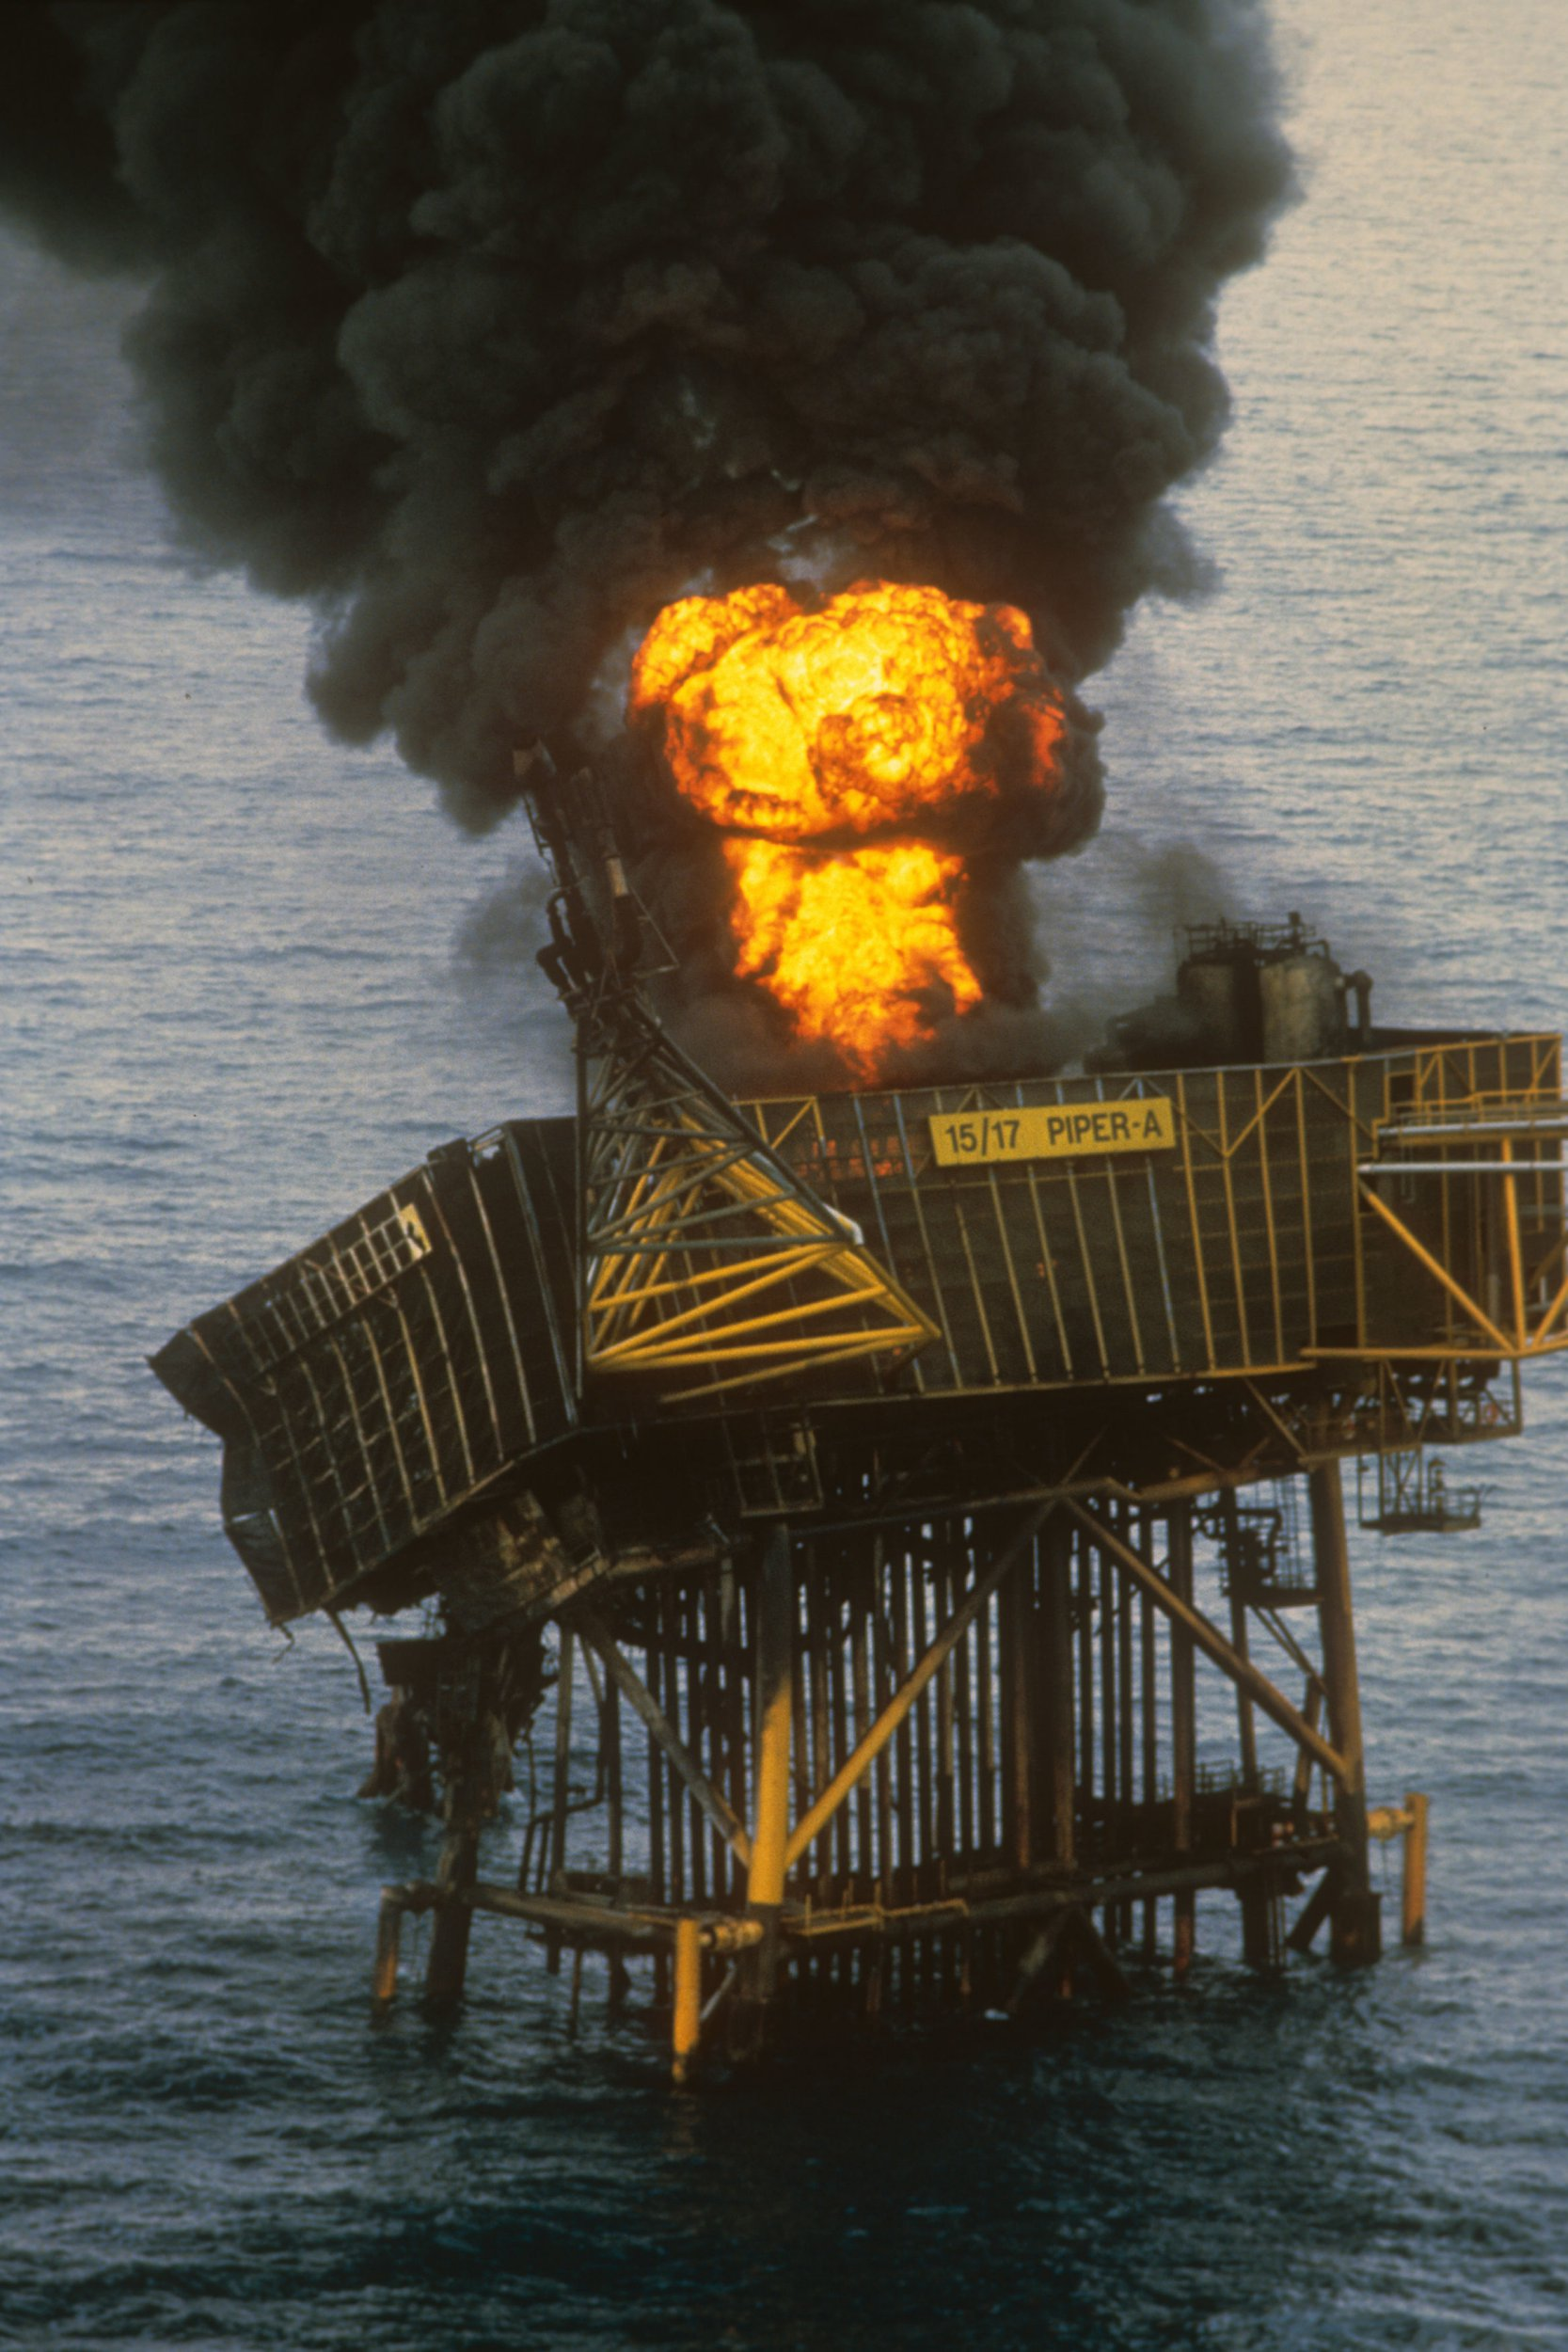 File photo dated 08/07/88 of a fire burning on the North Sea oil rig Piper Alpha following an explosion that killed 167 men. The 30th anniversary of the Piper Alpha disaster falls later this week, with those who perished in the tragedy to be remembered at a special memorial service. PRESS ASSOCIATION Photo. Issue date: Monday July 2, 2018. The evening event will take place in Aberdeen on Friday at the Piper Alpha Memorial Garden in Hazlehead Park. See PA story ANNIVERSARY PiperAlpha. Photo credit should read: PA Wire